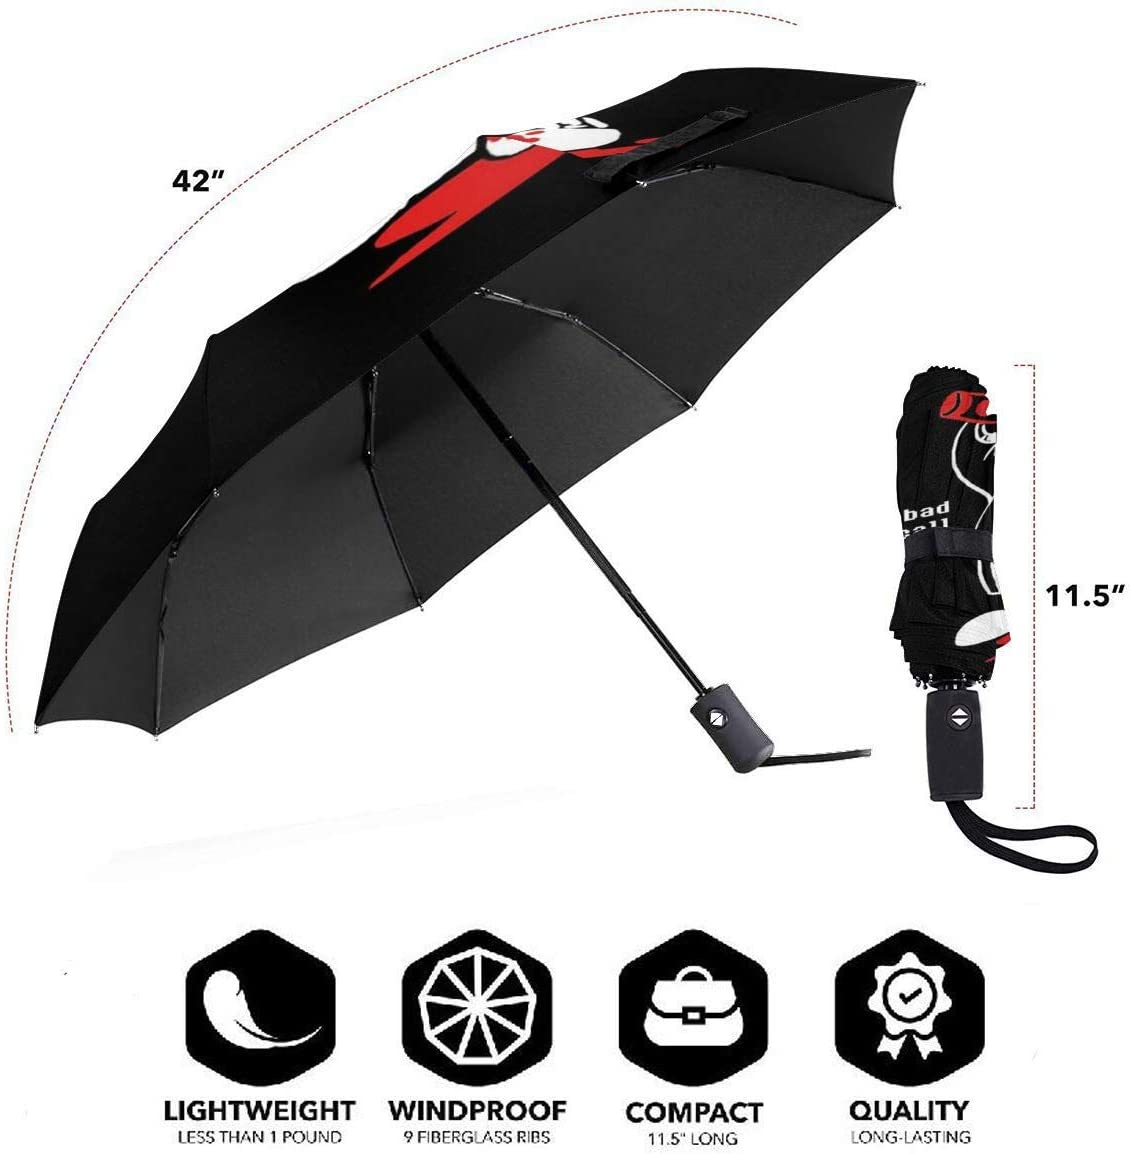 Undertale For A Bad Time Sans Windproof Compact Auto Open And Close Folding Umbrella,Automatic Foldable Travel Parasol Umbrella